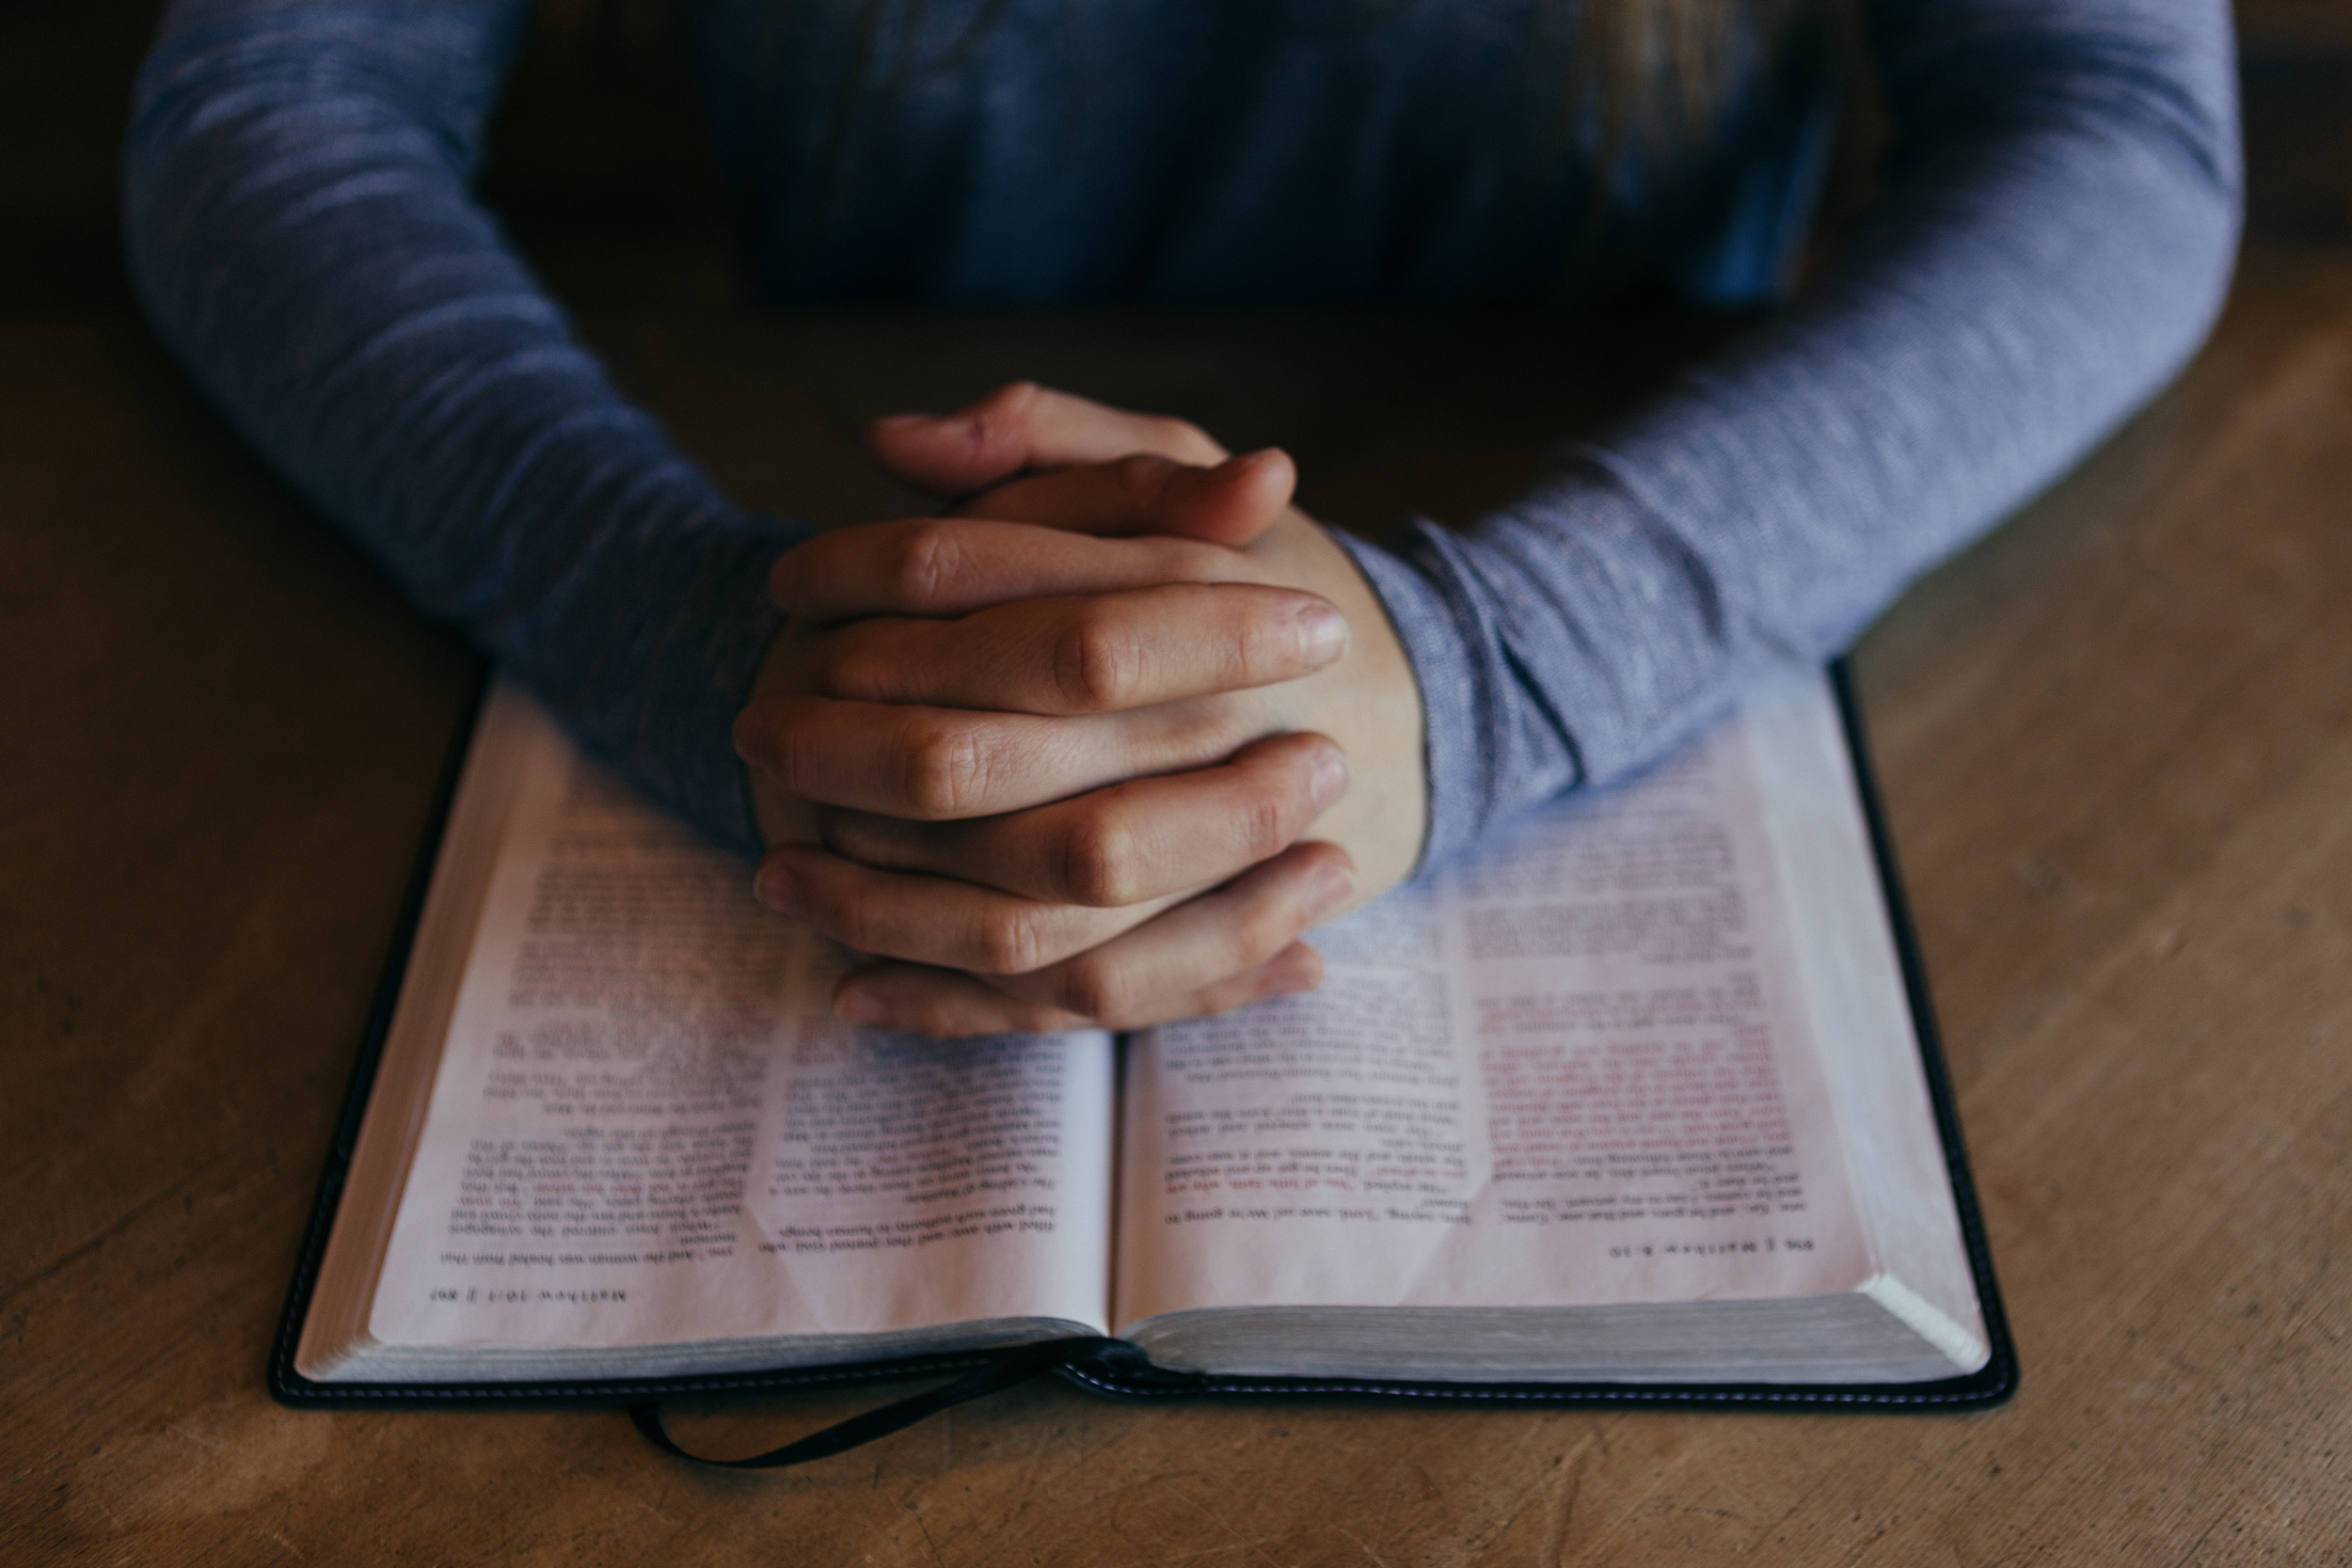 Stay in Prayer and in the Word